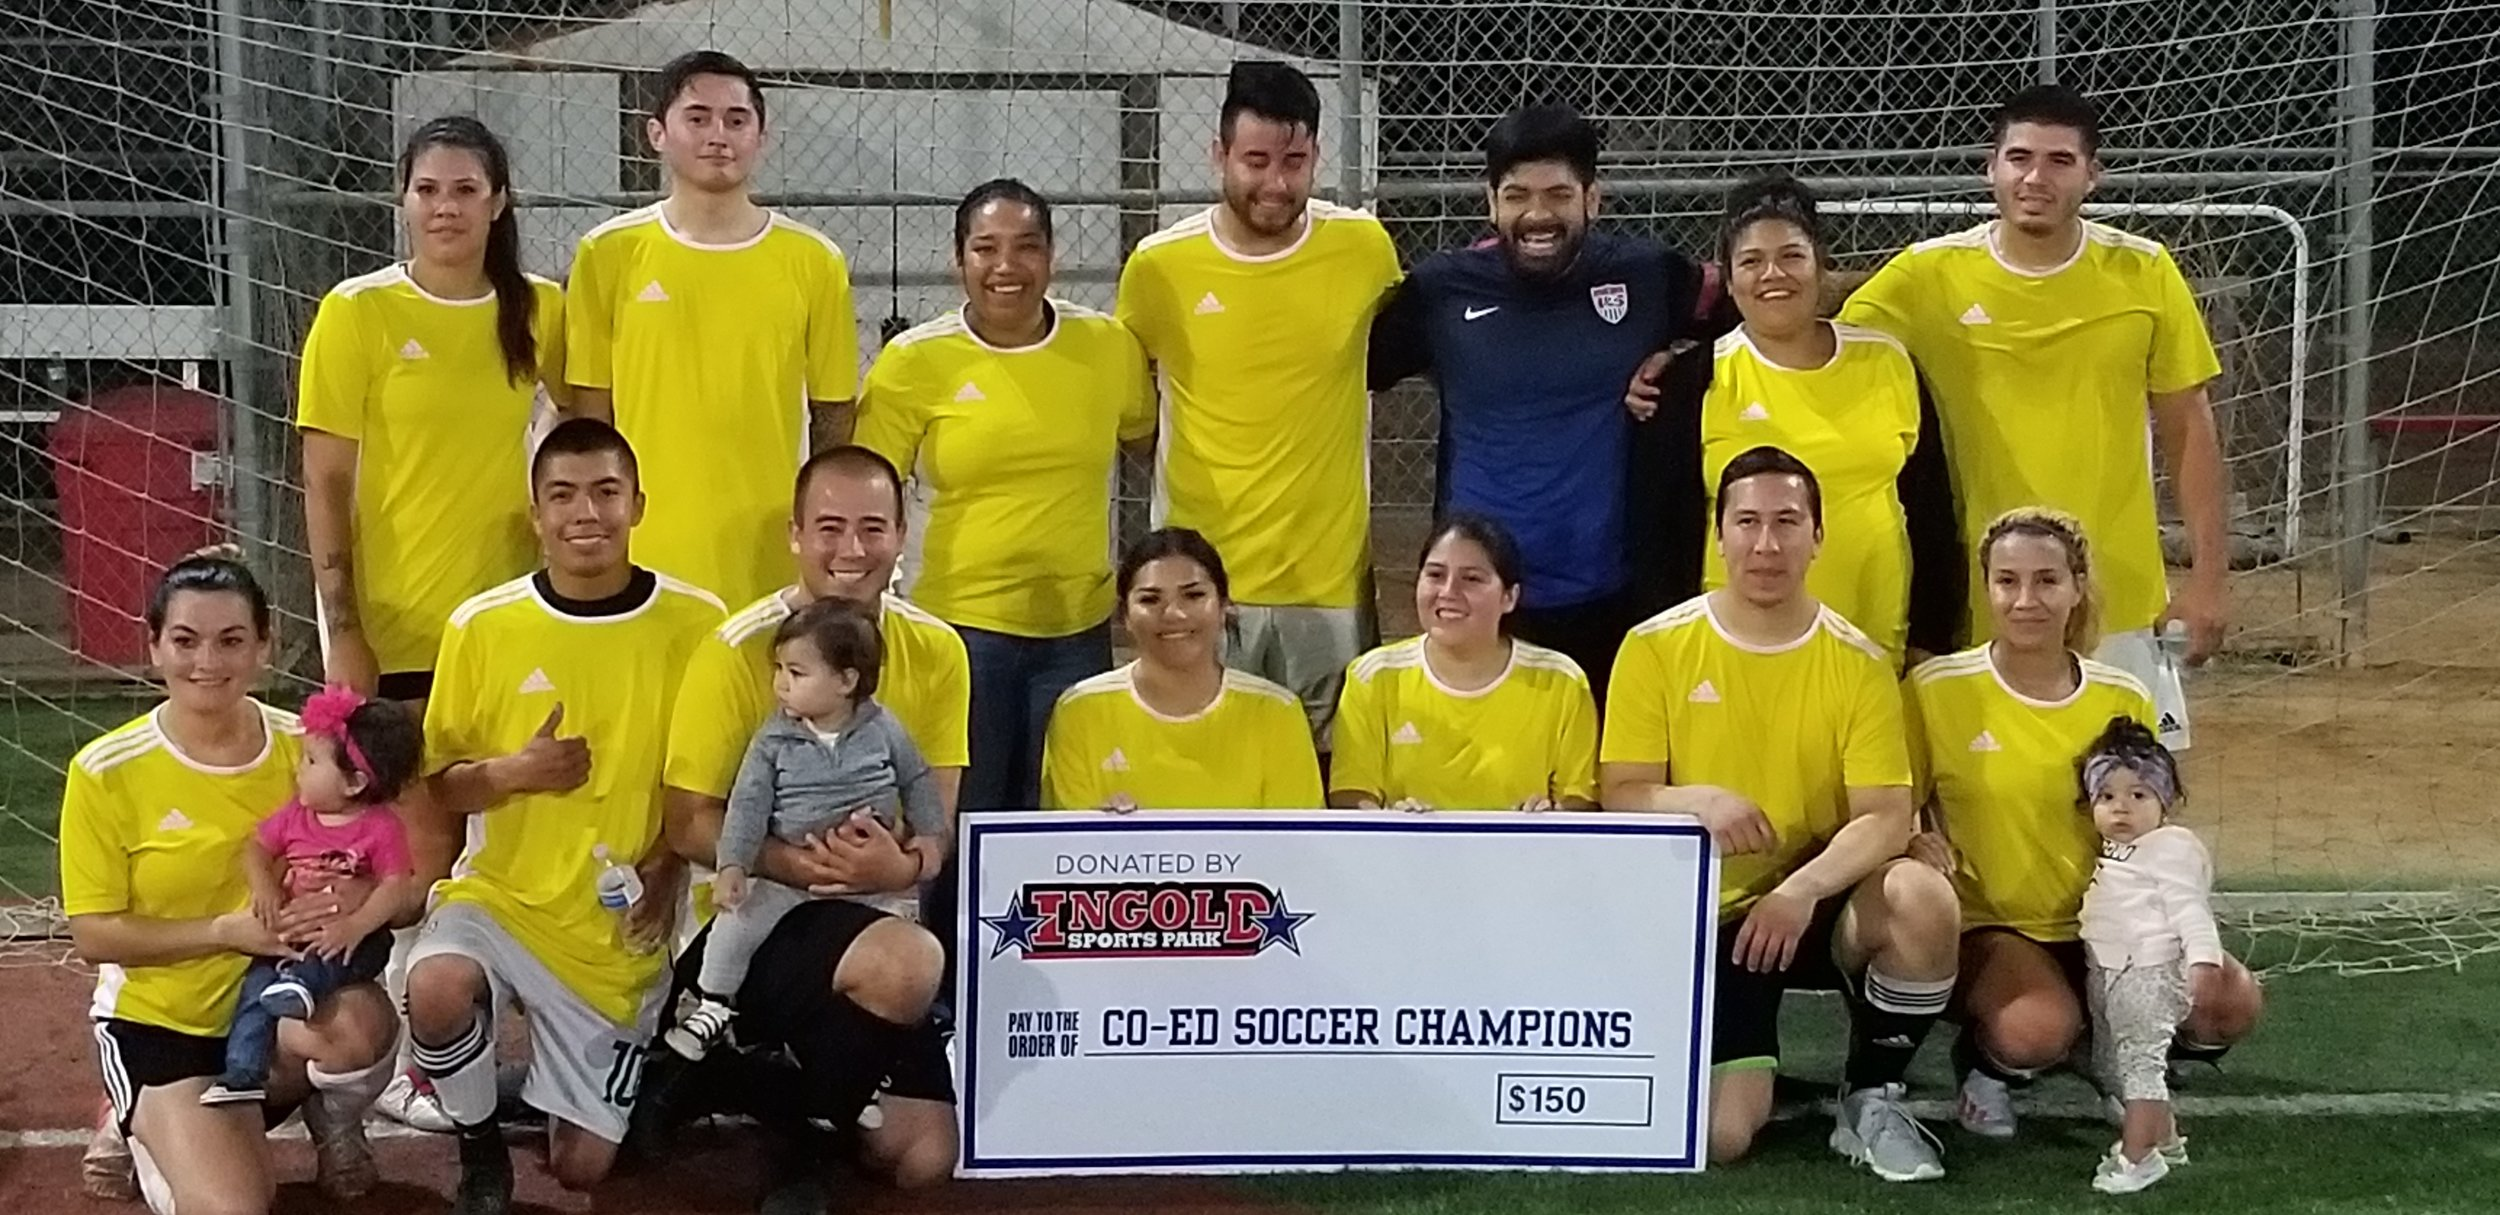 coed soccer a division champs the Krew.jpg